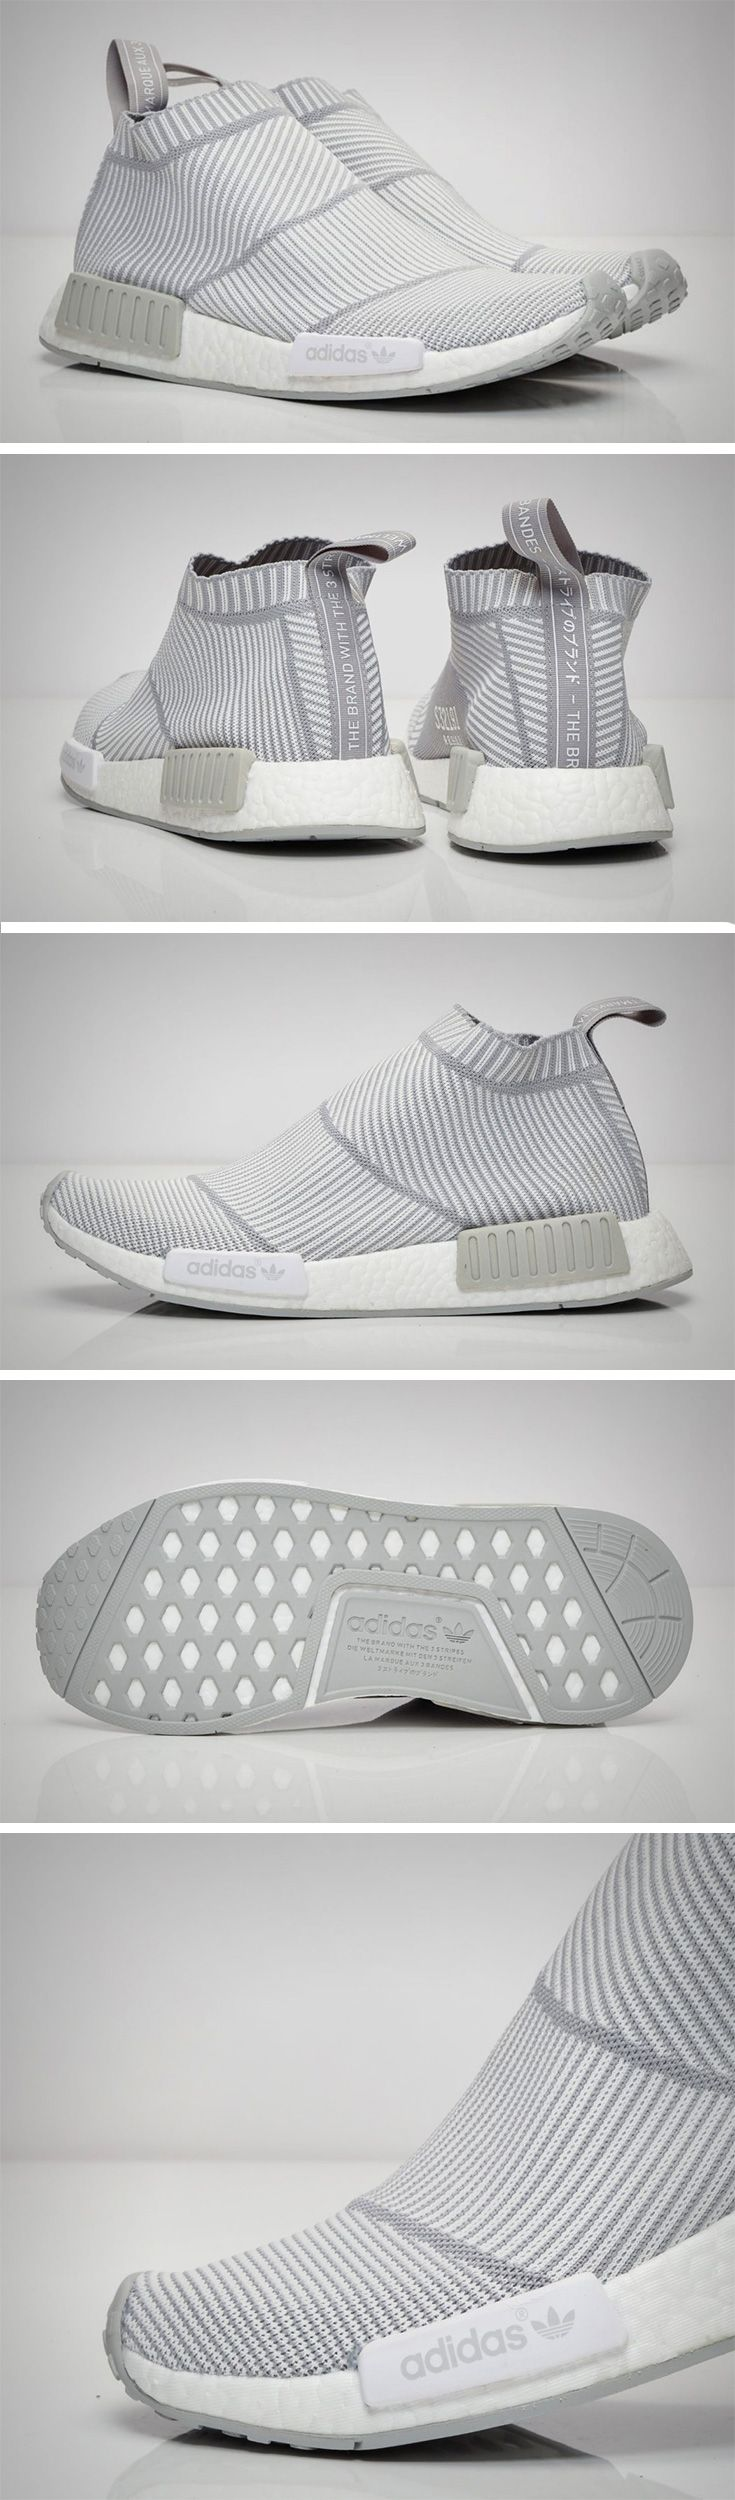 "The latest from Adidas Originals is an NMD tribute to minimalism that combines the best of Primeknit and Boost! Called the ""NMD City Sock"", this urban style/runner hybrid footwear features a Primeknit upper sock-like strap construction that wraps the foot in adaptive support and ultralight comfort as well as a Boost sole offers ultra-responsive cushioning. In a dual tone white and grey combination, this pair is aesthetically on point for summer!"